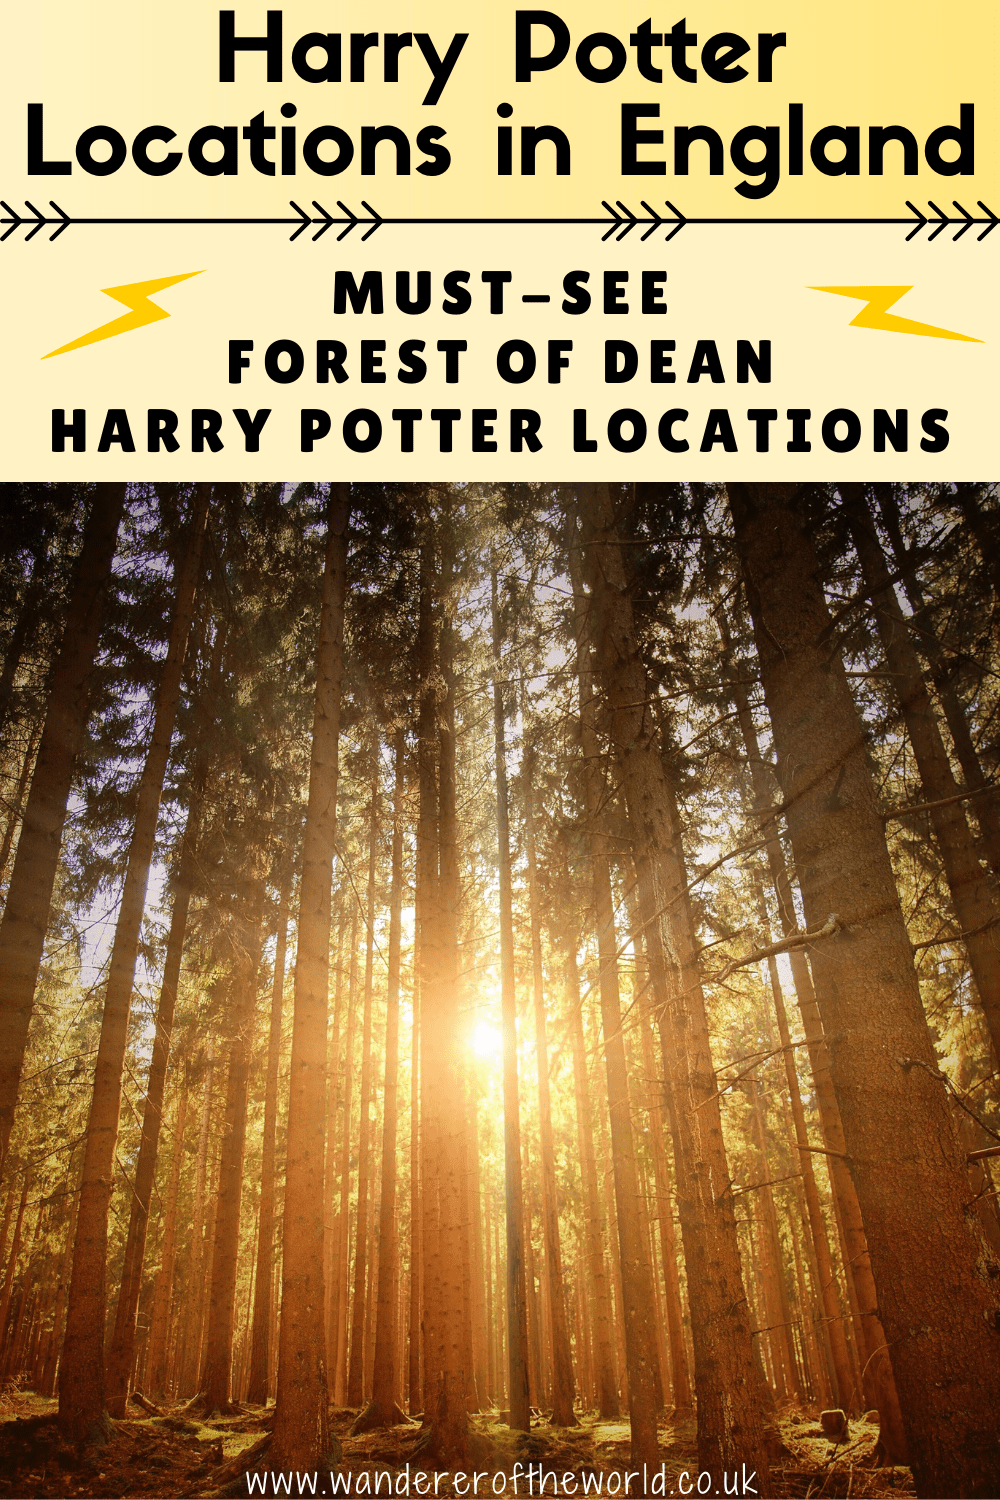 Must-See Forest of Dean Harry Potter Locations